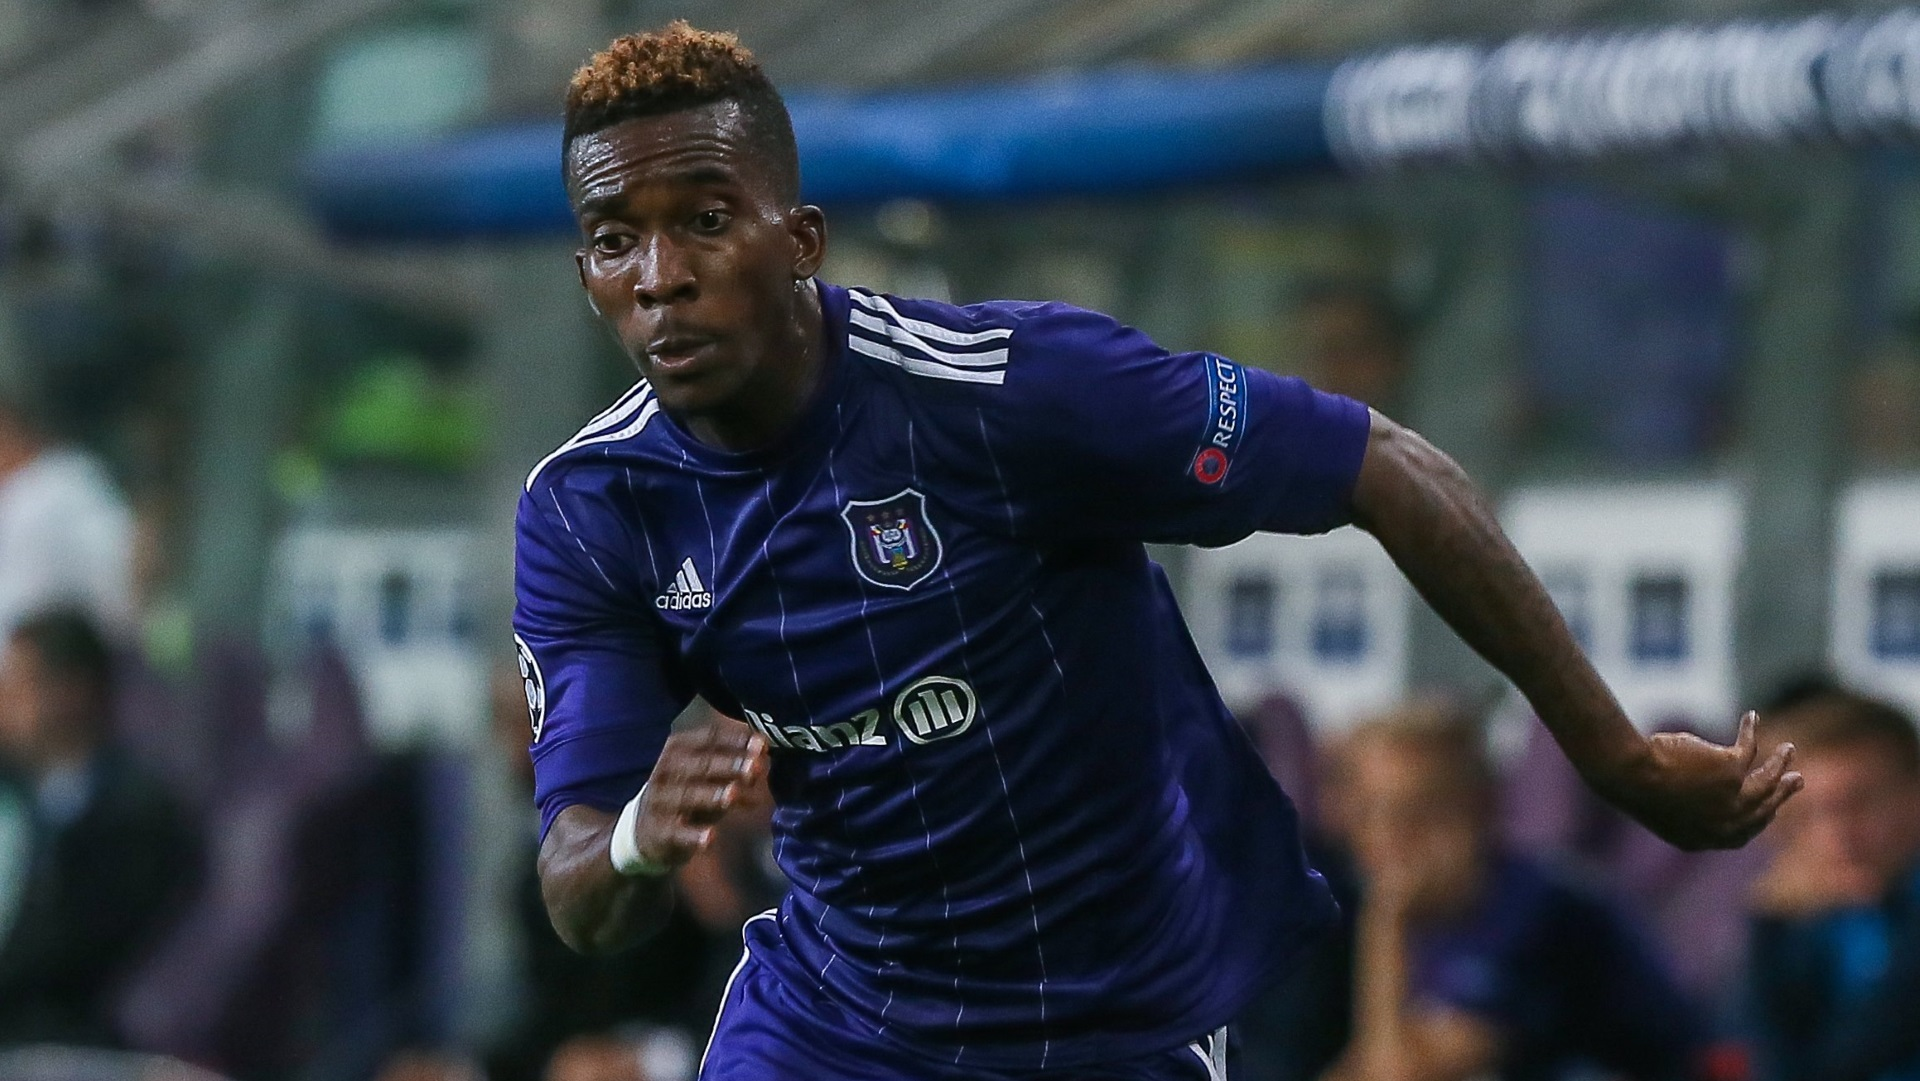 Onyekuru scores brace as Anderlecht edge past Mechelen